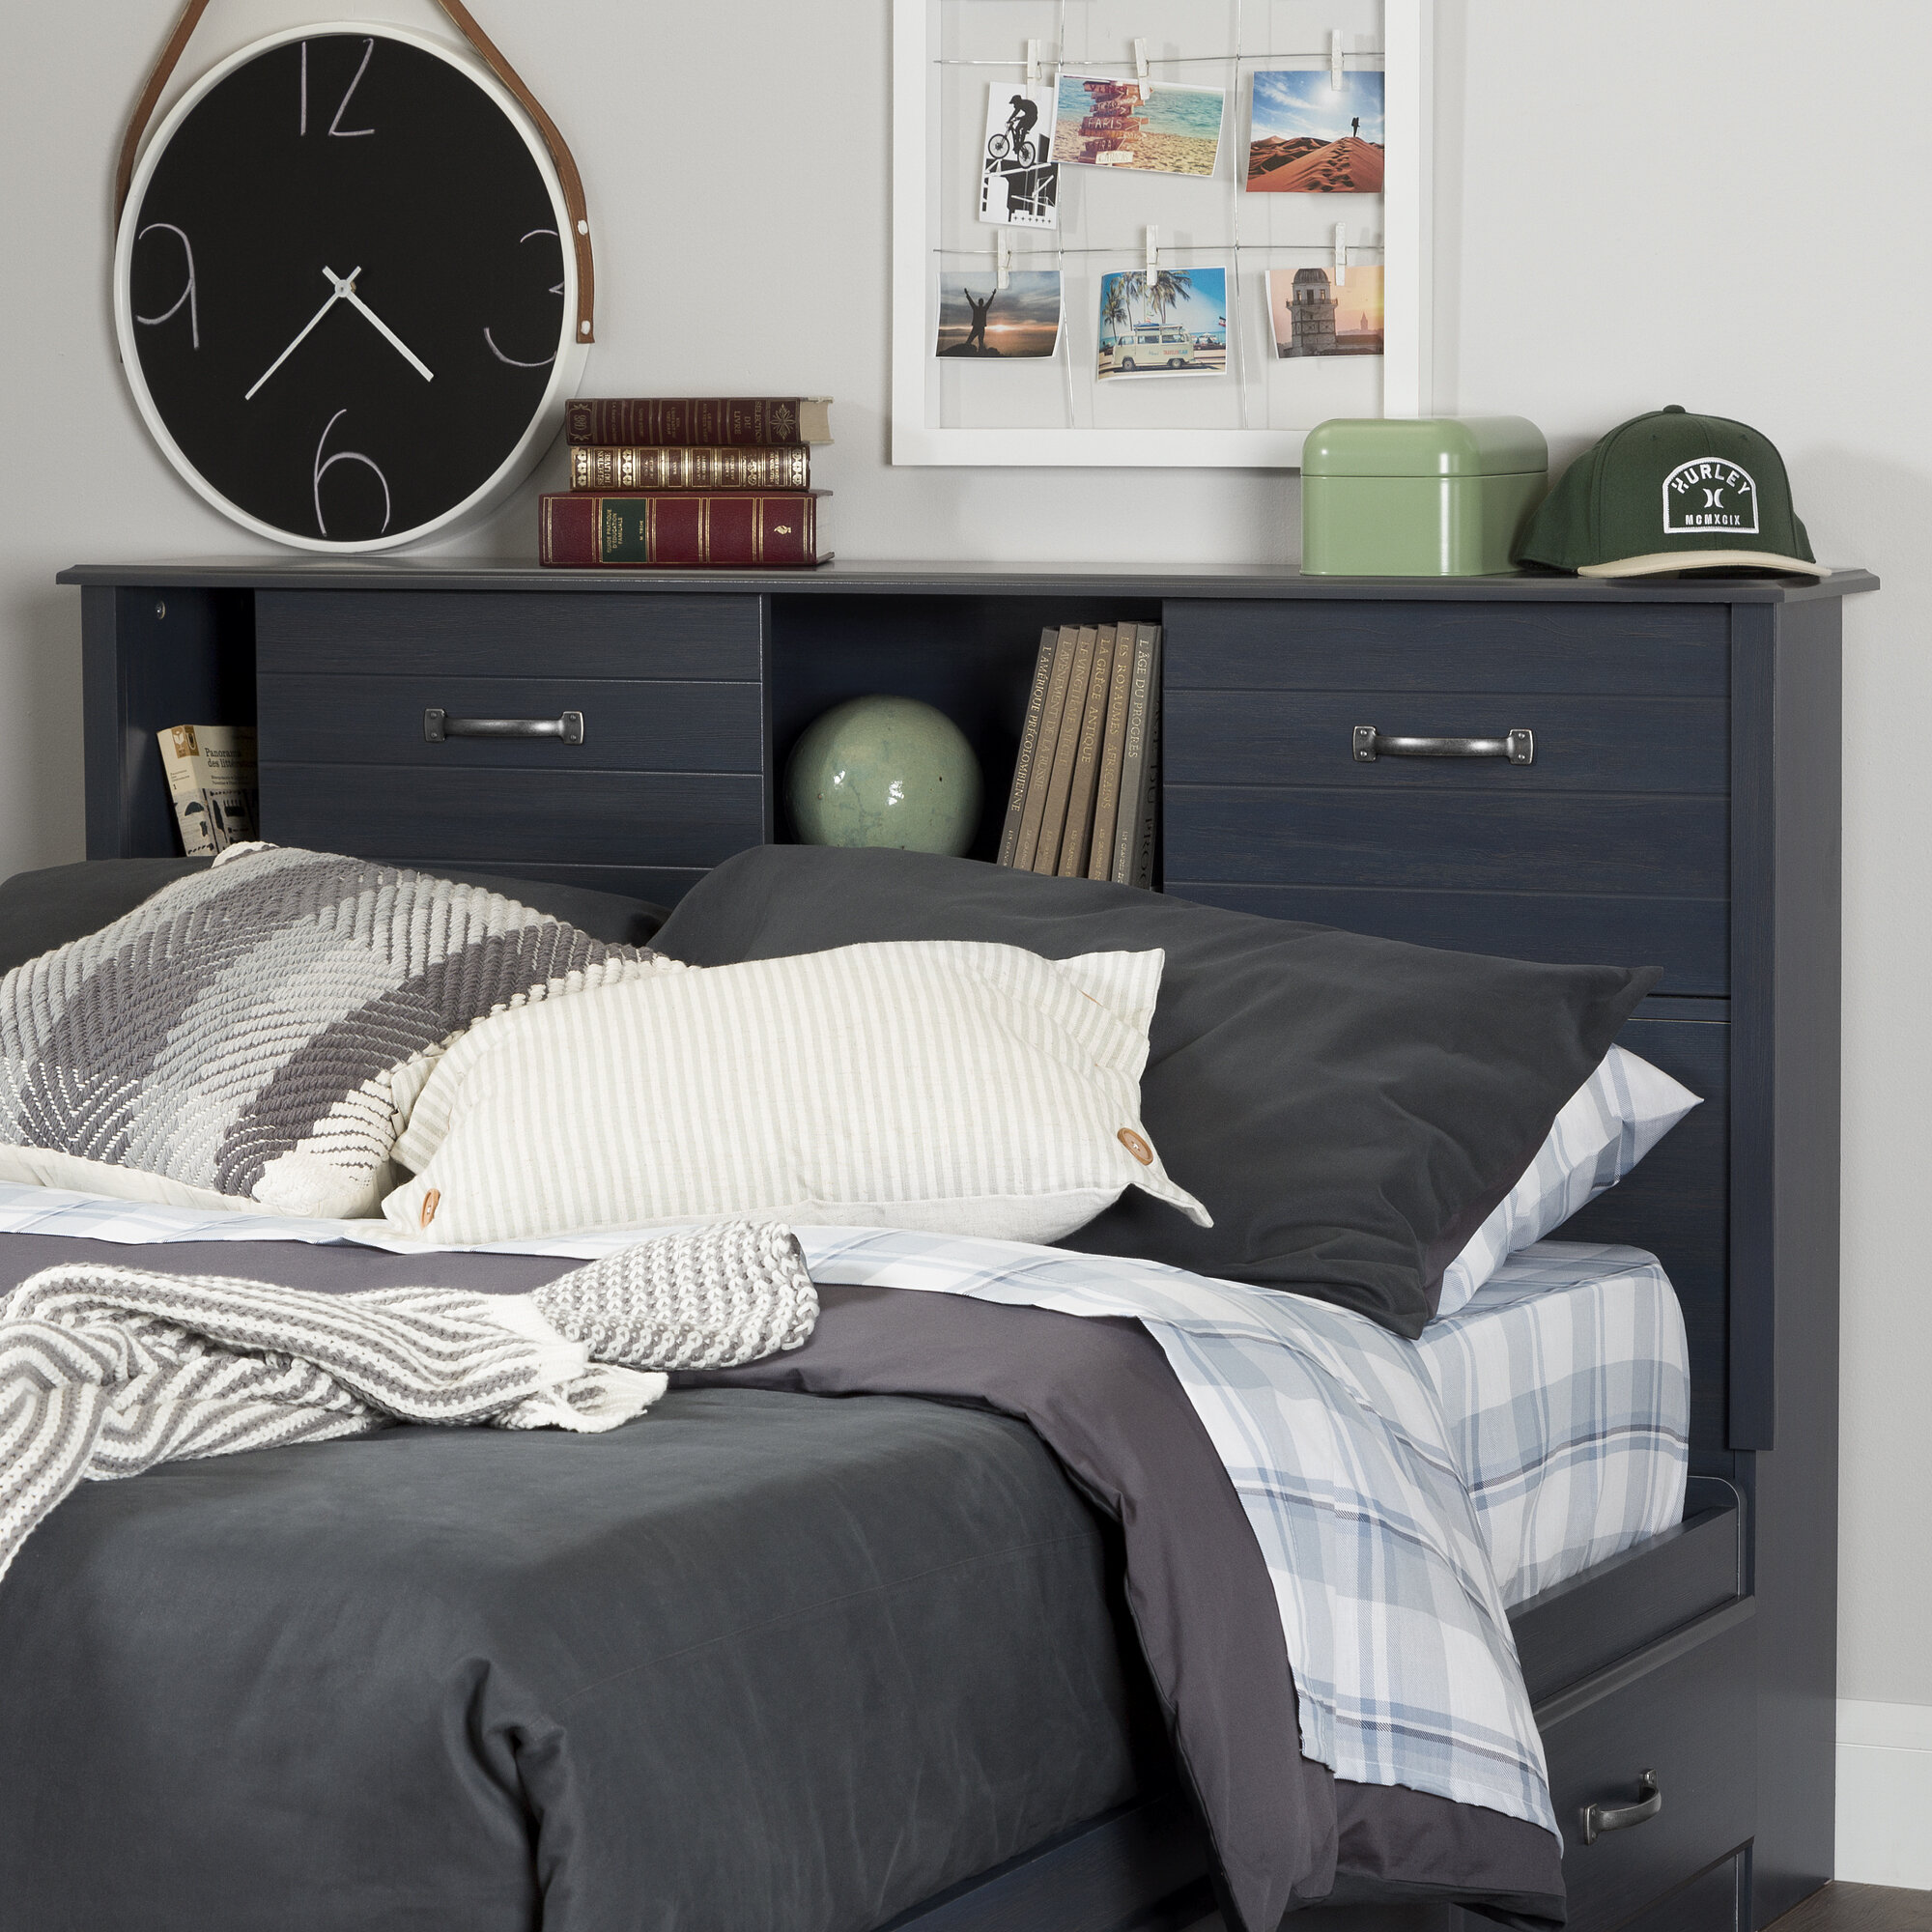 linen white size walmart queen bookshelf bookcase fullqueen of king bed headboard black cubby diy for bookcases full sale beds plans headboards sauder wood throughout twin